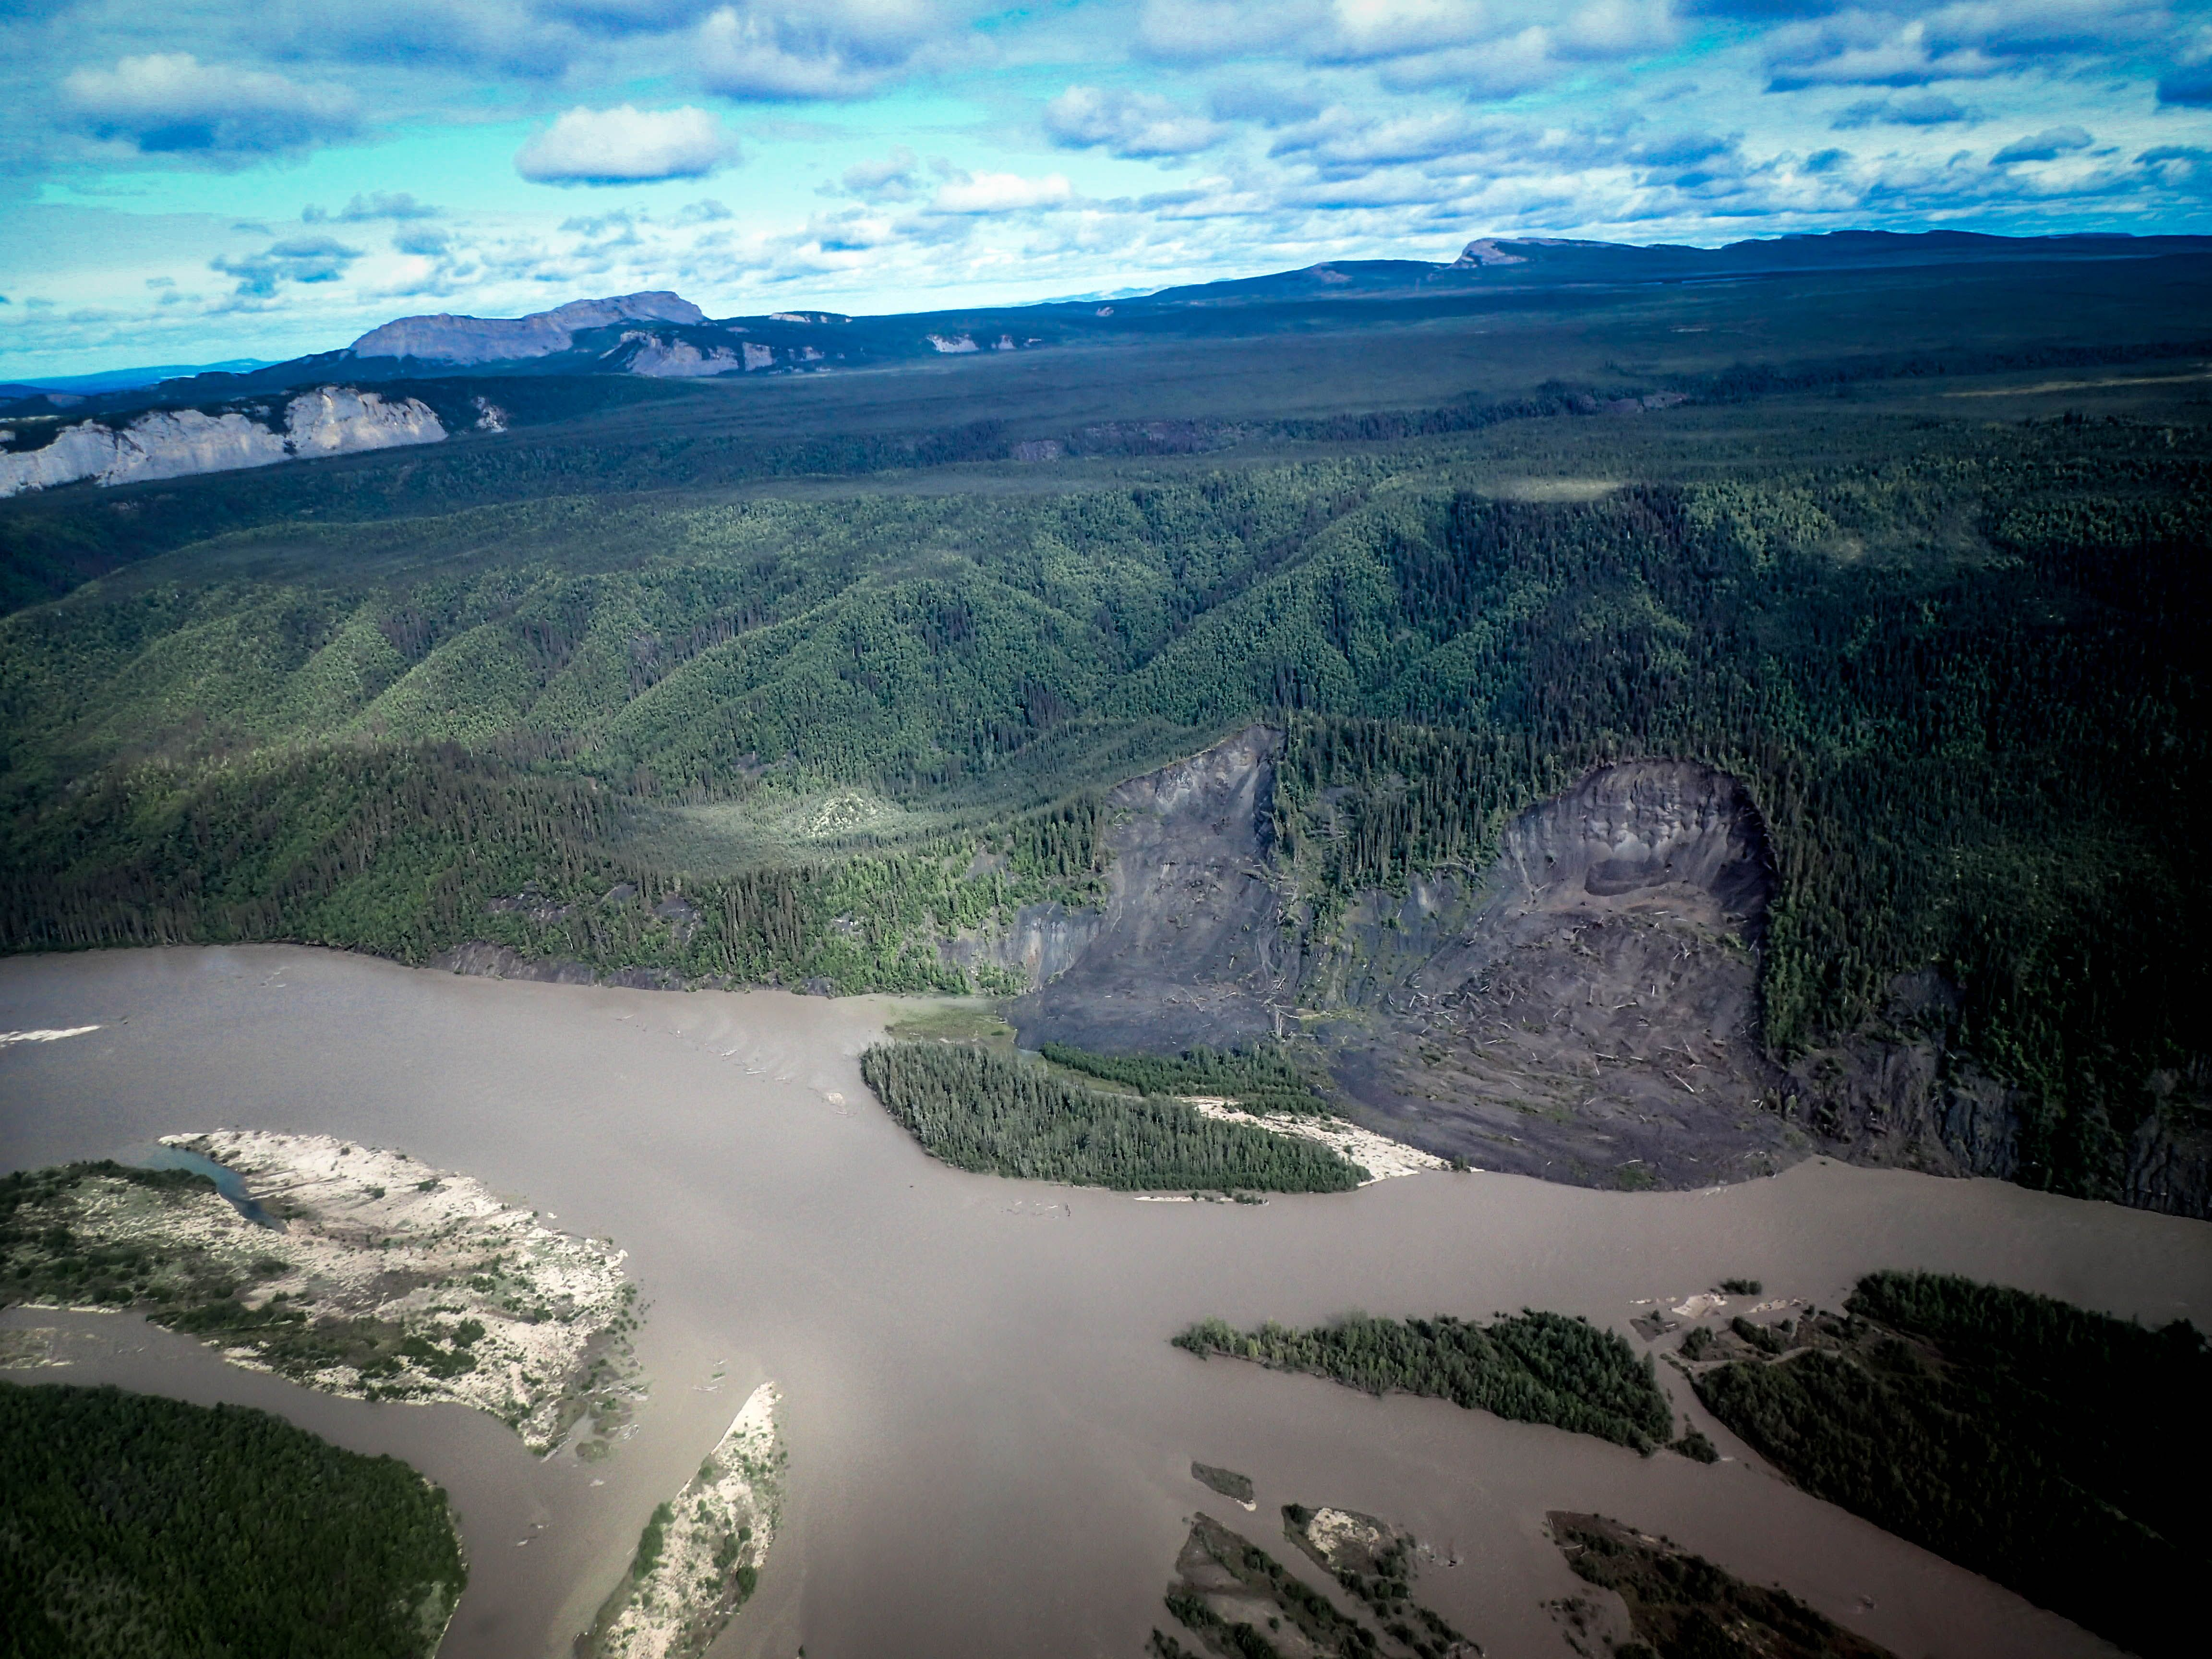 rapid permafrost thaw unrecognized threat to landscape